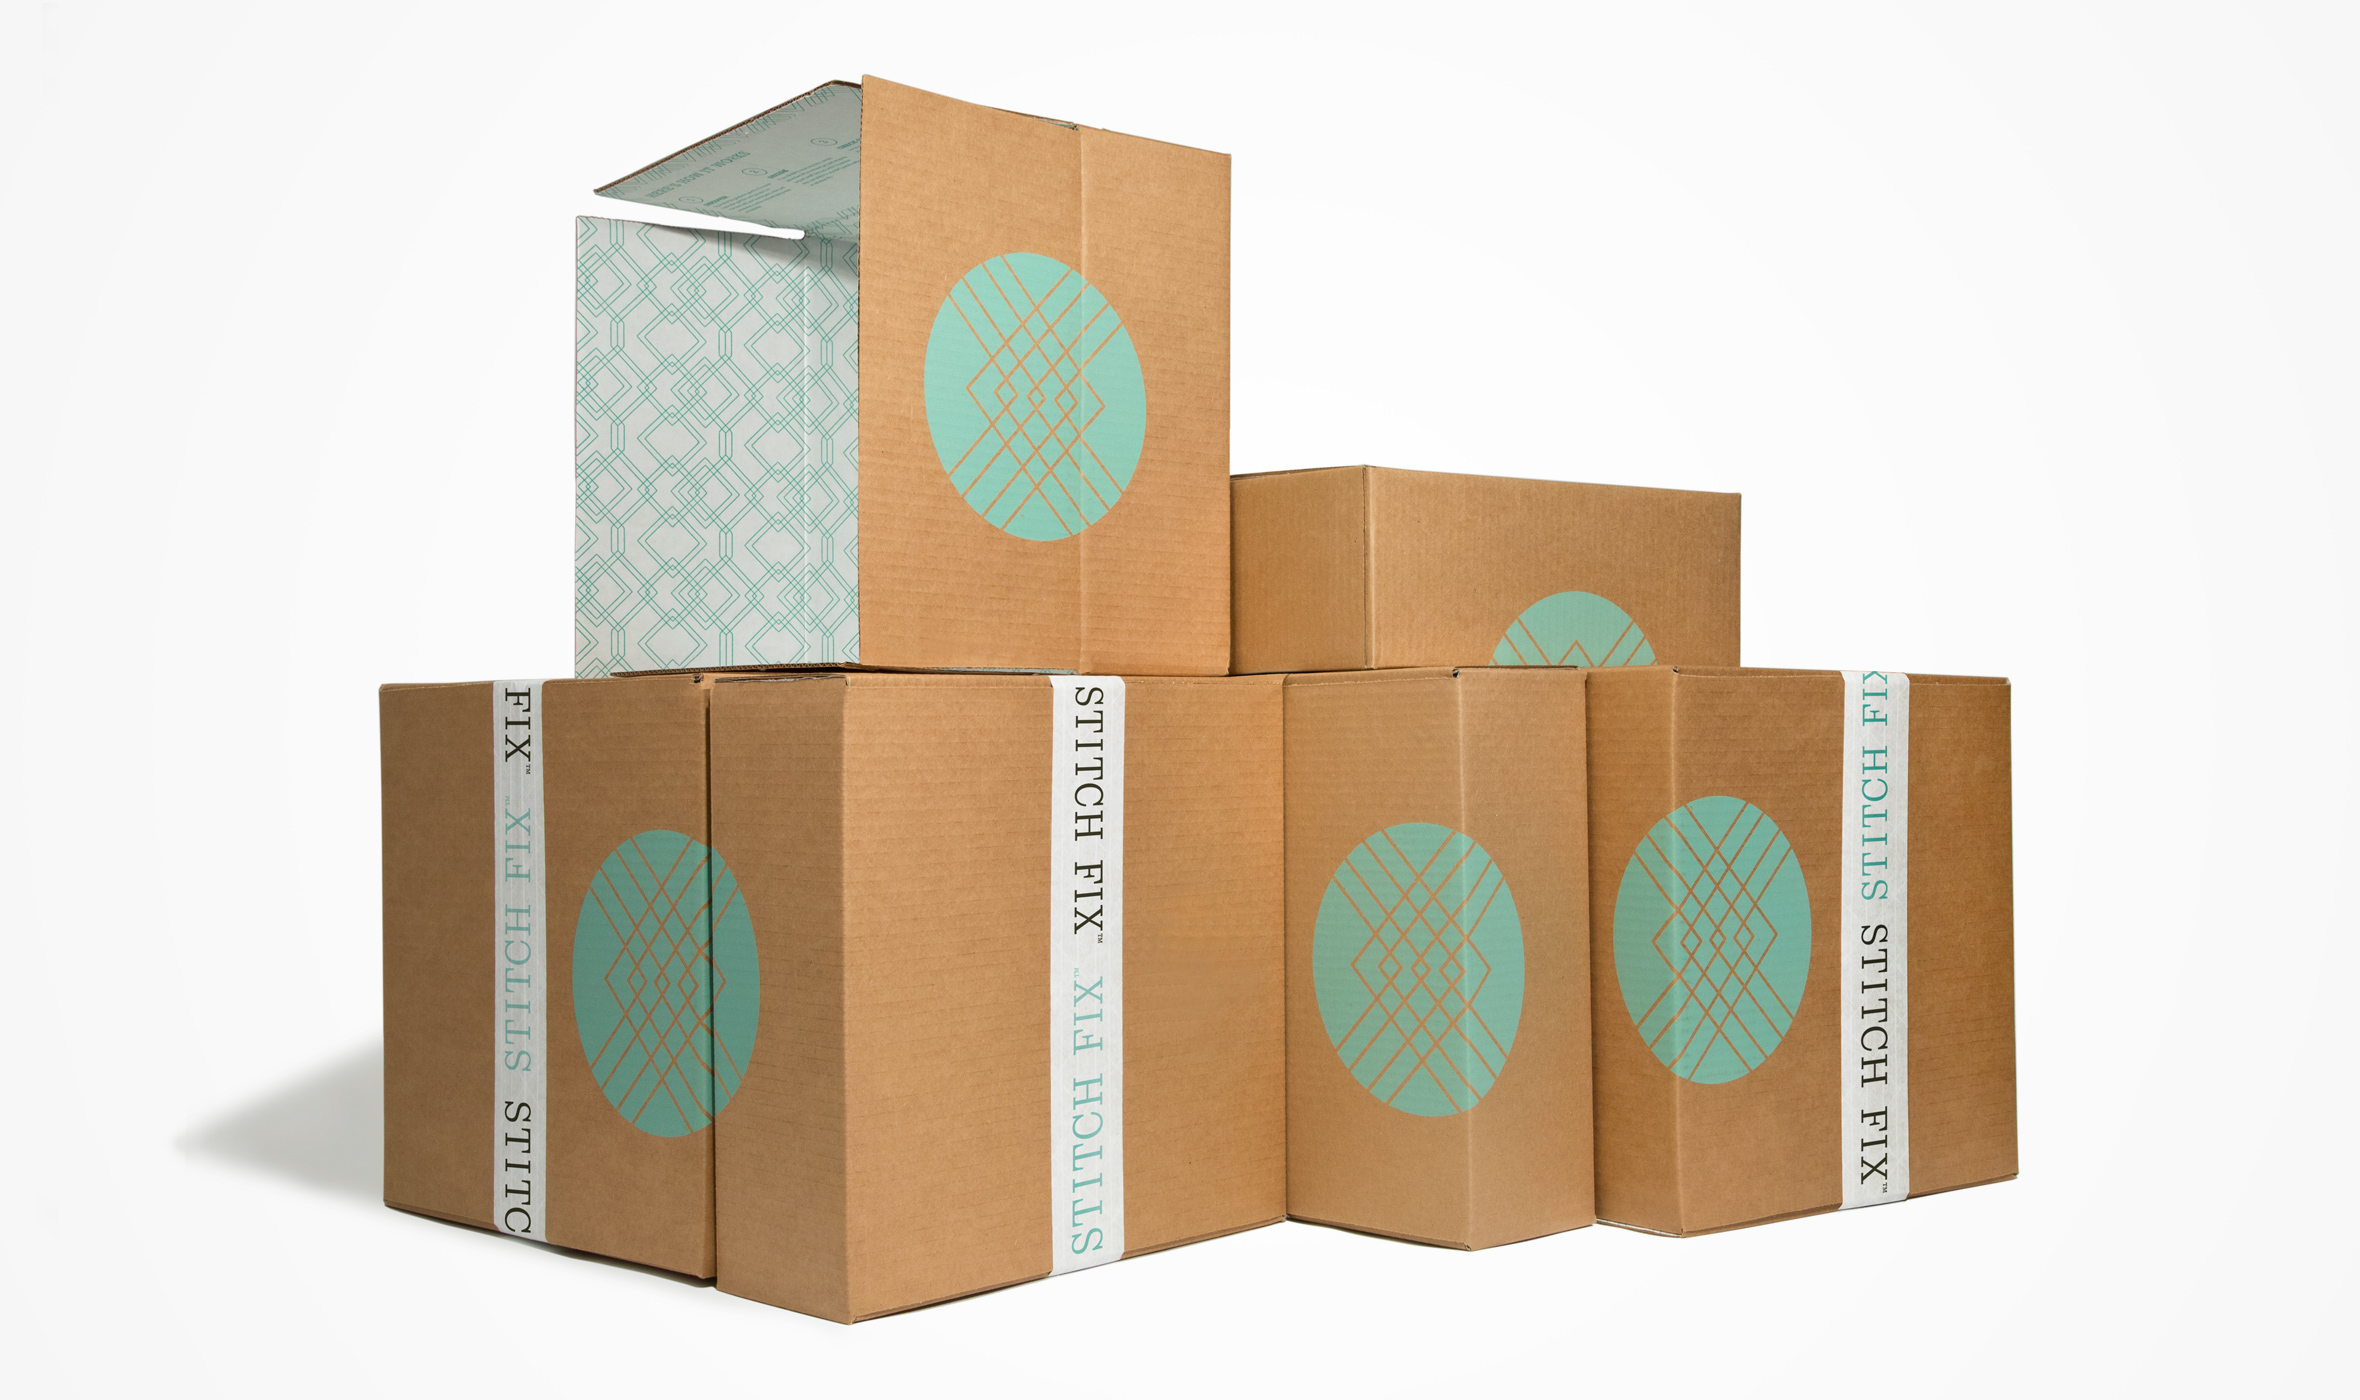 office_stitchfix_boxes.jpg